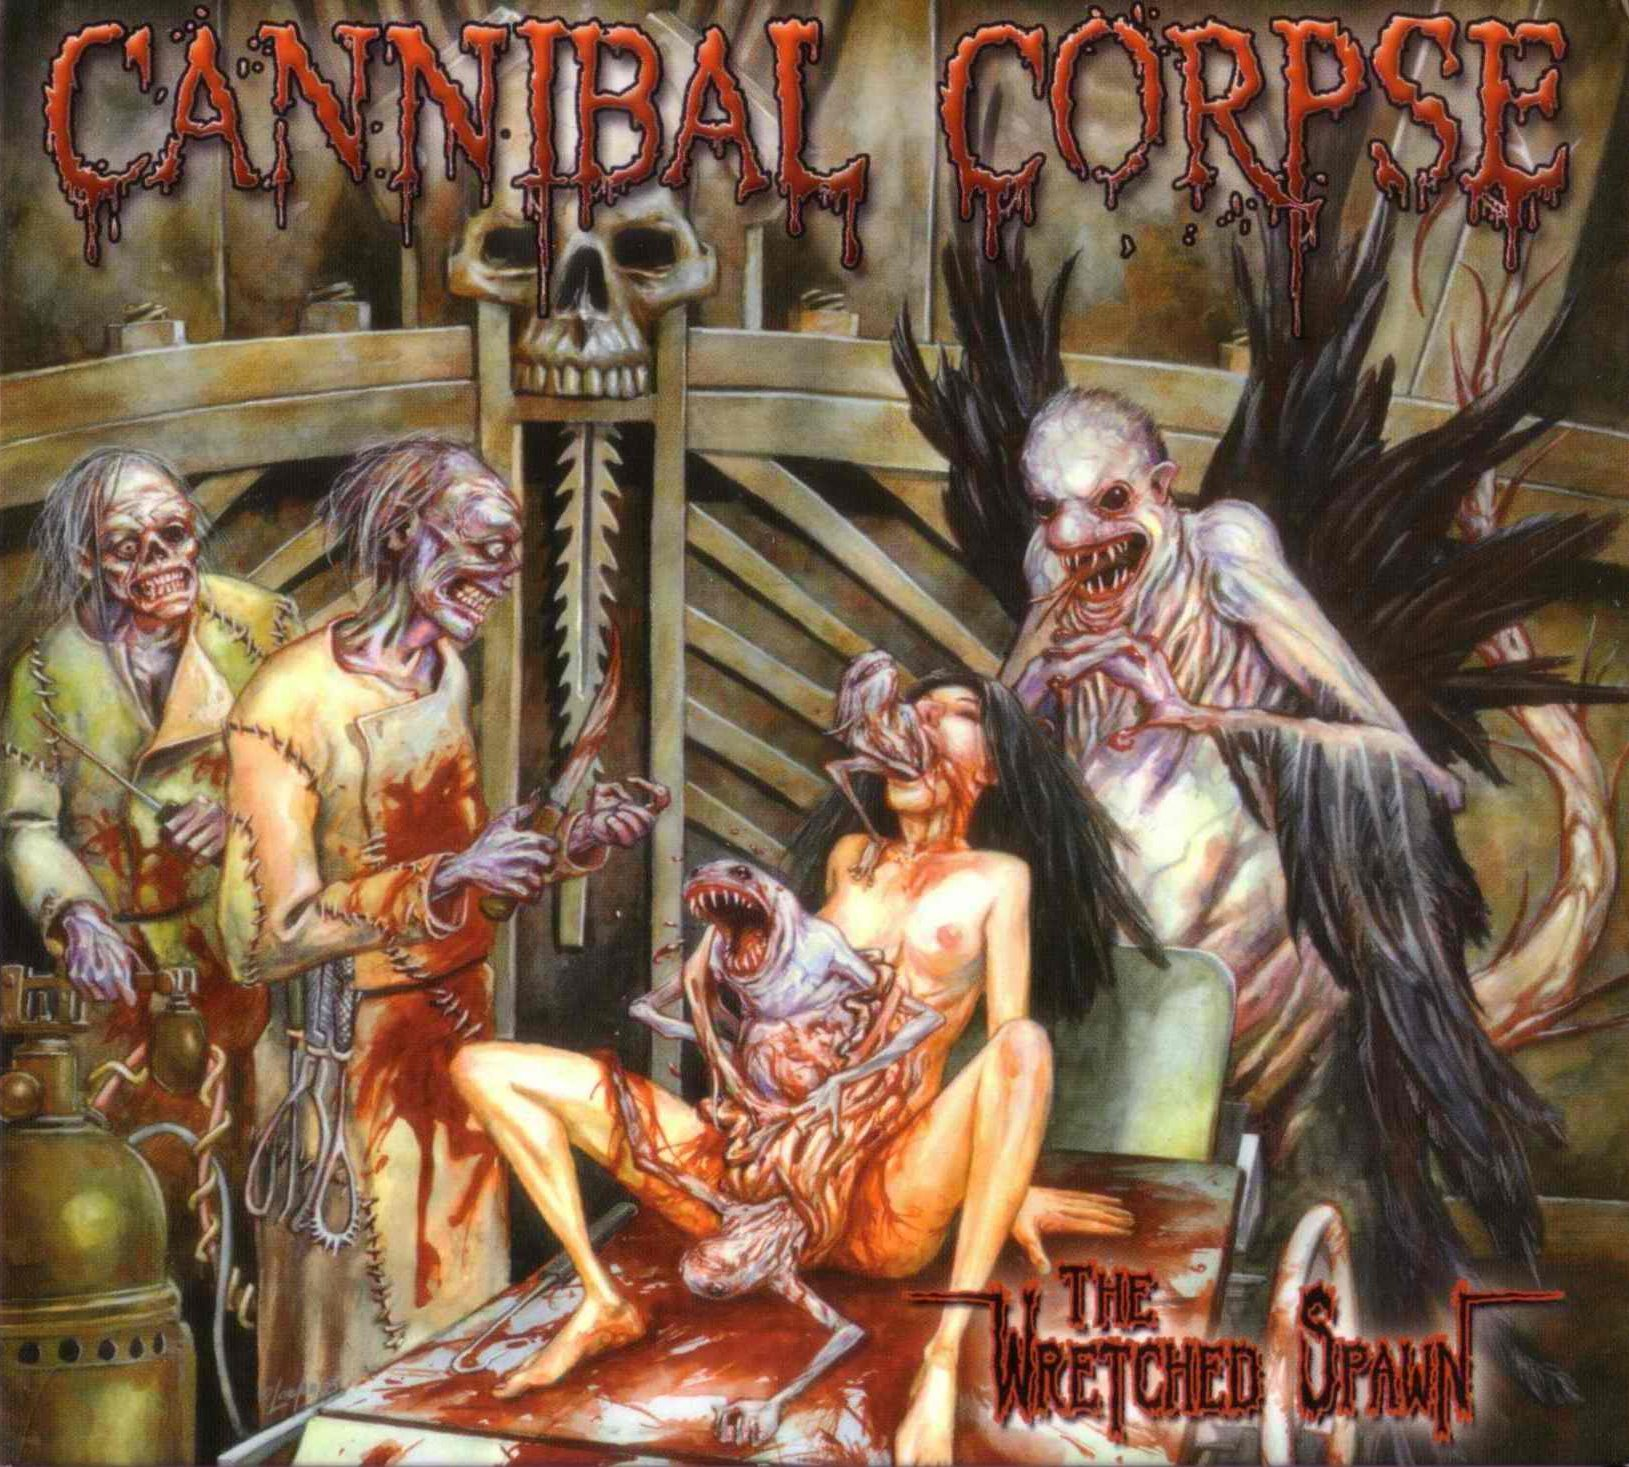 CD : Cannibal Corpse - Wretched Spawn (With DVD, Clean Version, 2PC)